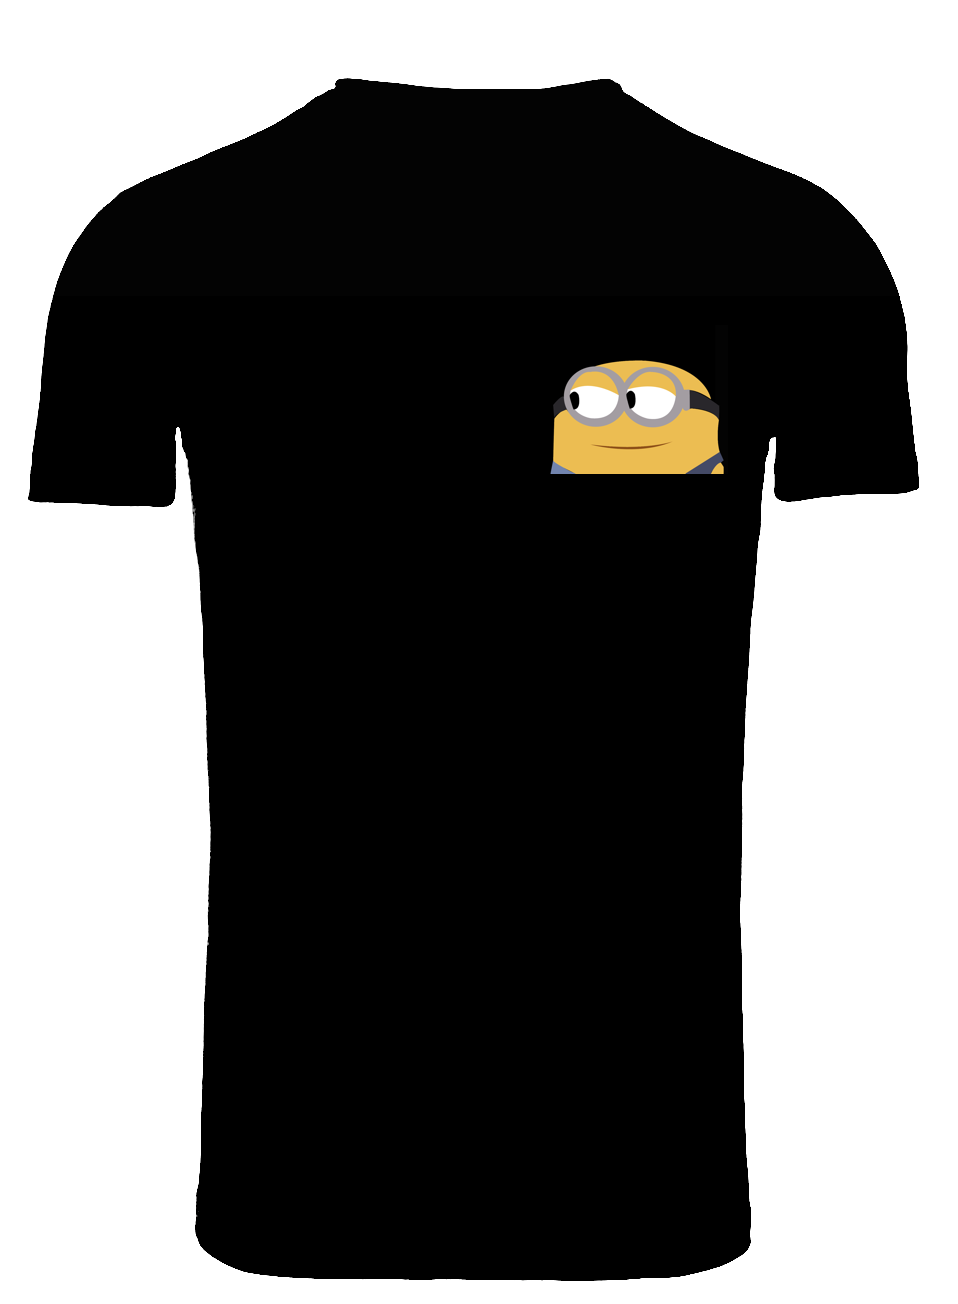 Pocket minion on t shirt template by creativedyslexic on deviantart creativedyslexic pocket minion on t shirt template by creativedyslexic pronofoot35fo Choice Image